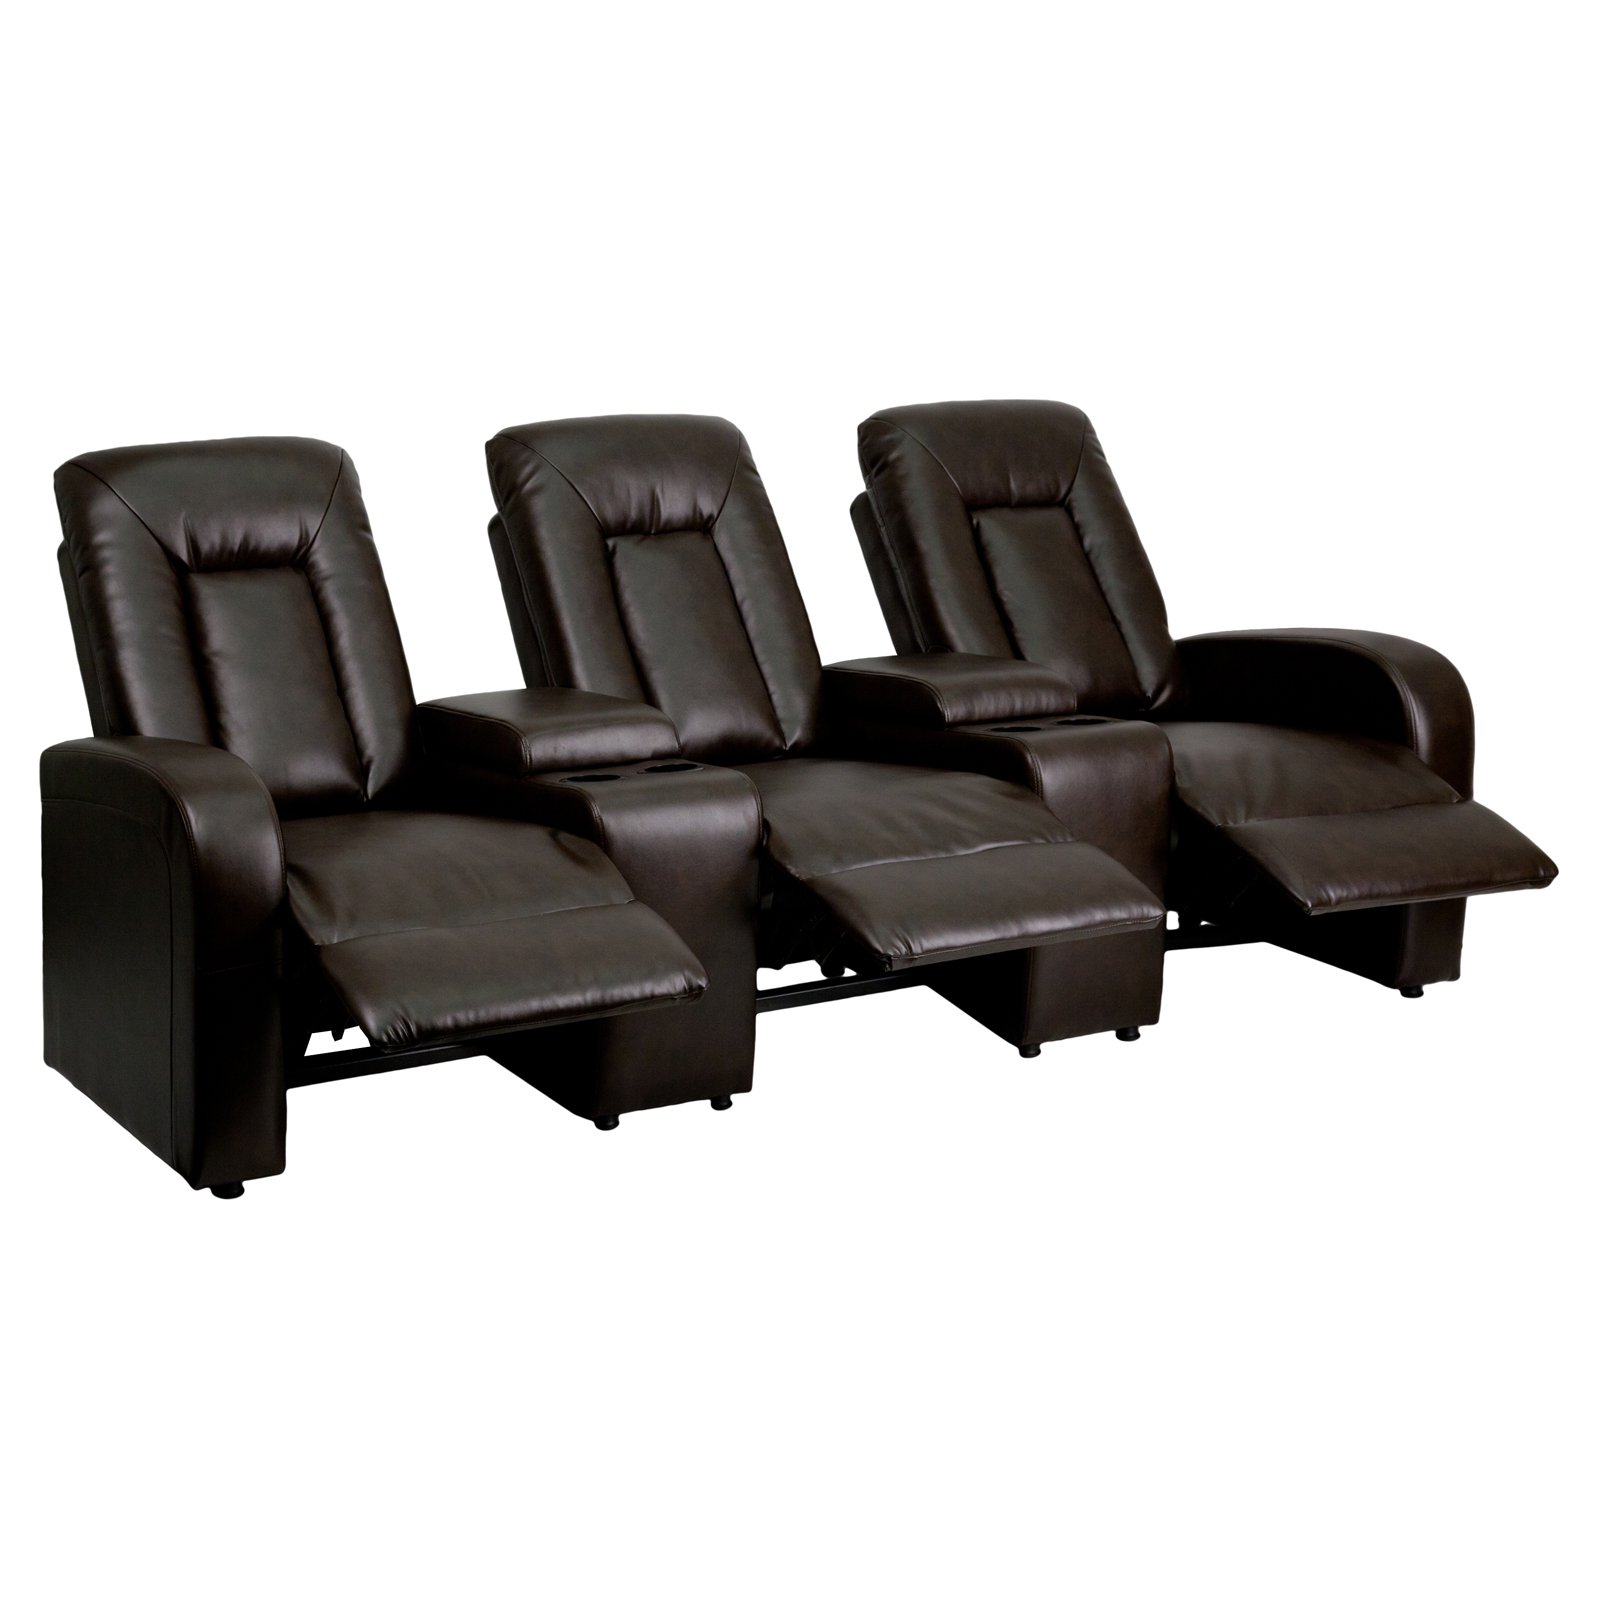 Flash Furniture Leather 3-Seat Home Theater Recliner with Storage Consoles, Multiple Colors